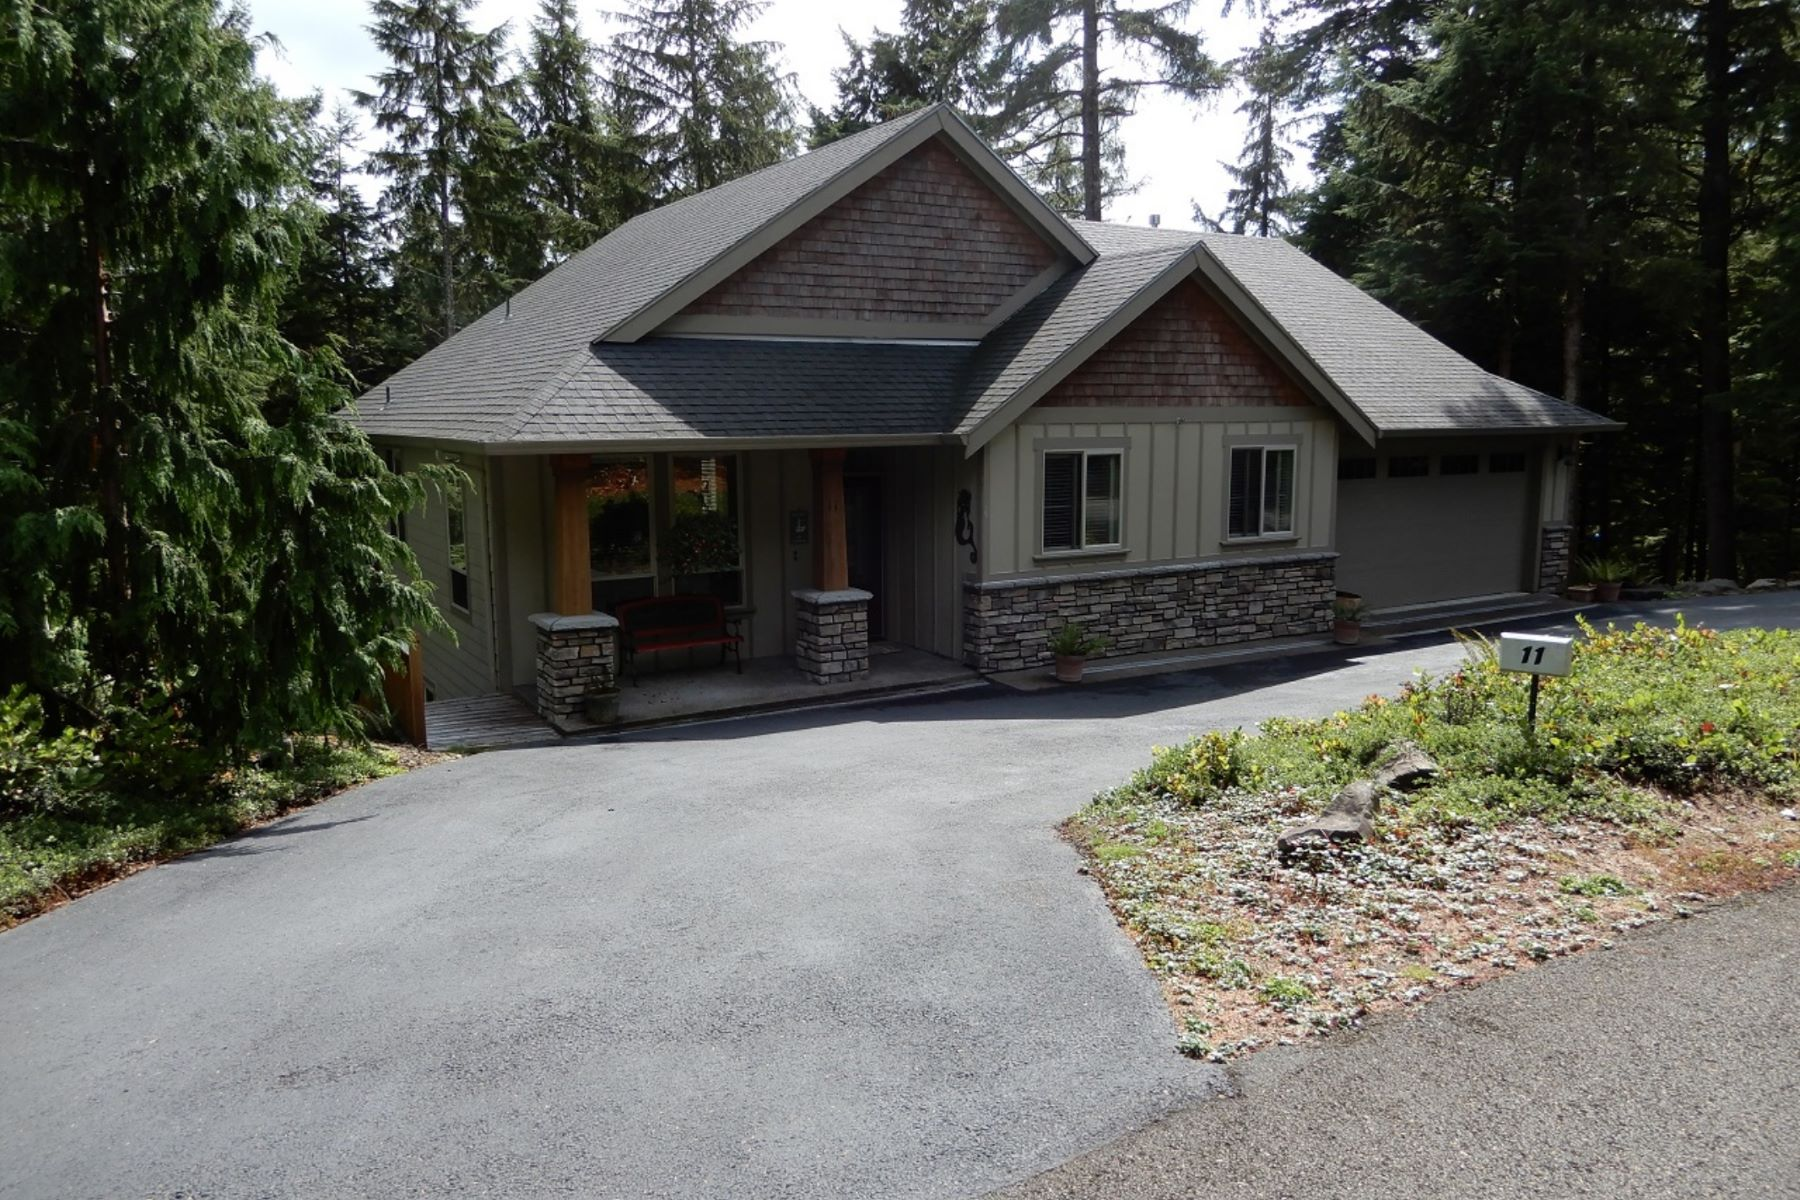 Single Family Homes for Active at Salishan Living Large 11 Big Tree Road Gleneden Beach, Oregon 97388 United States